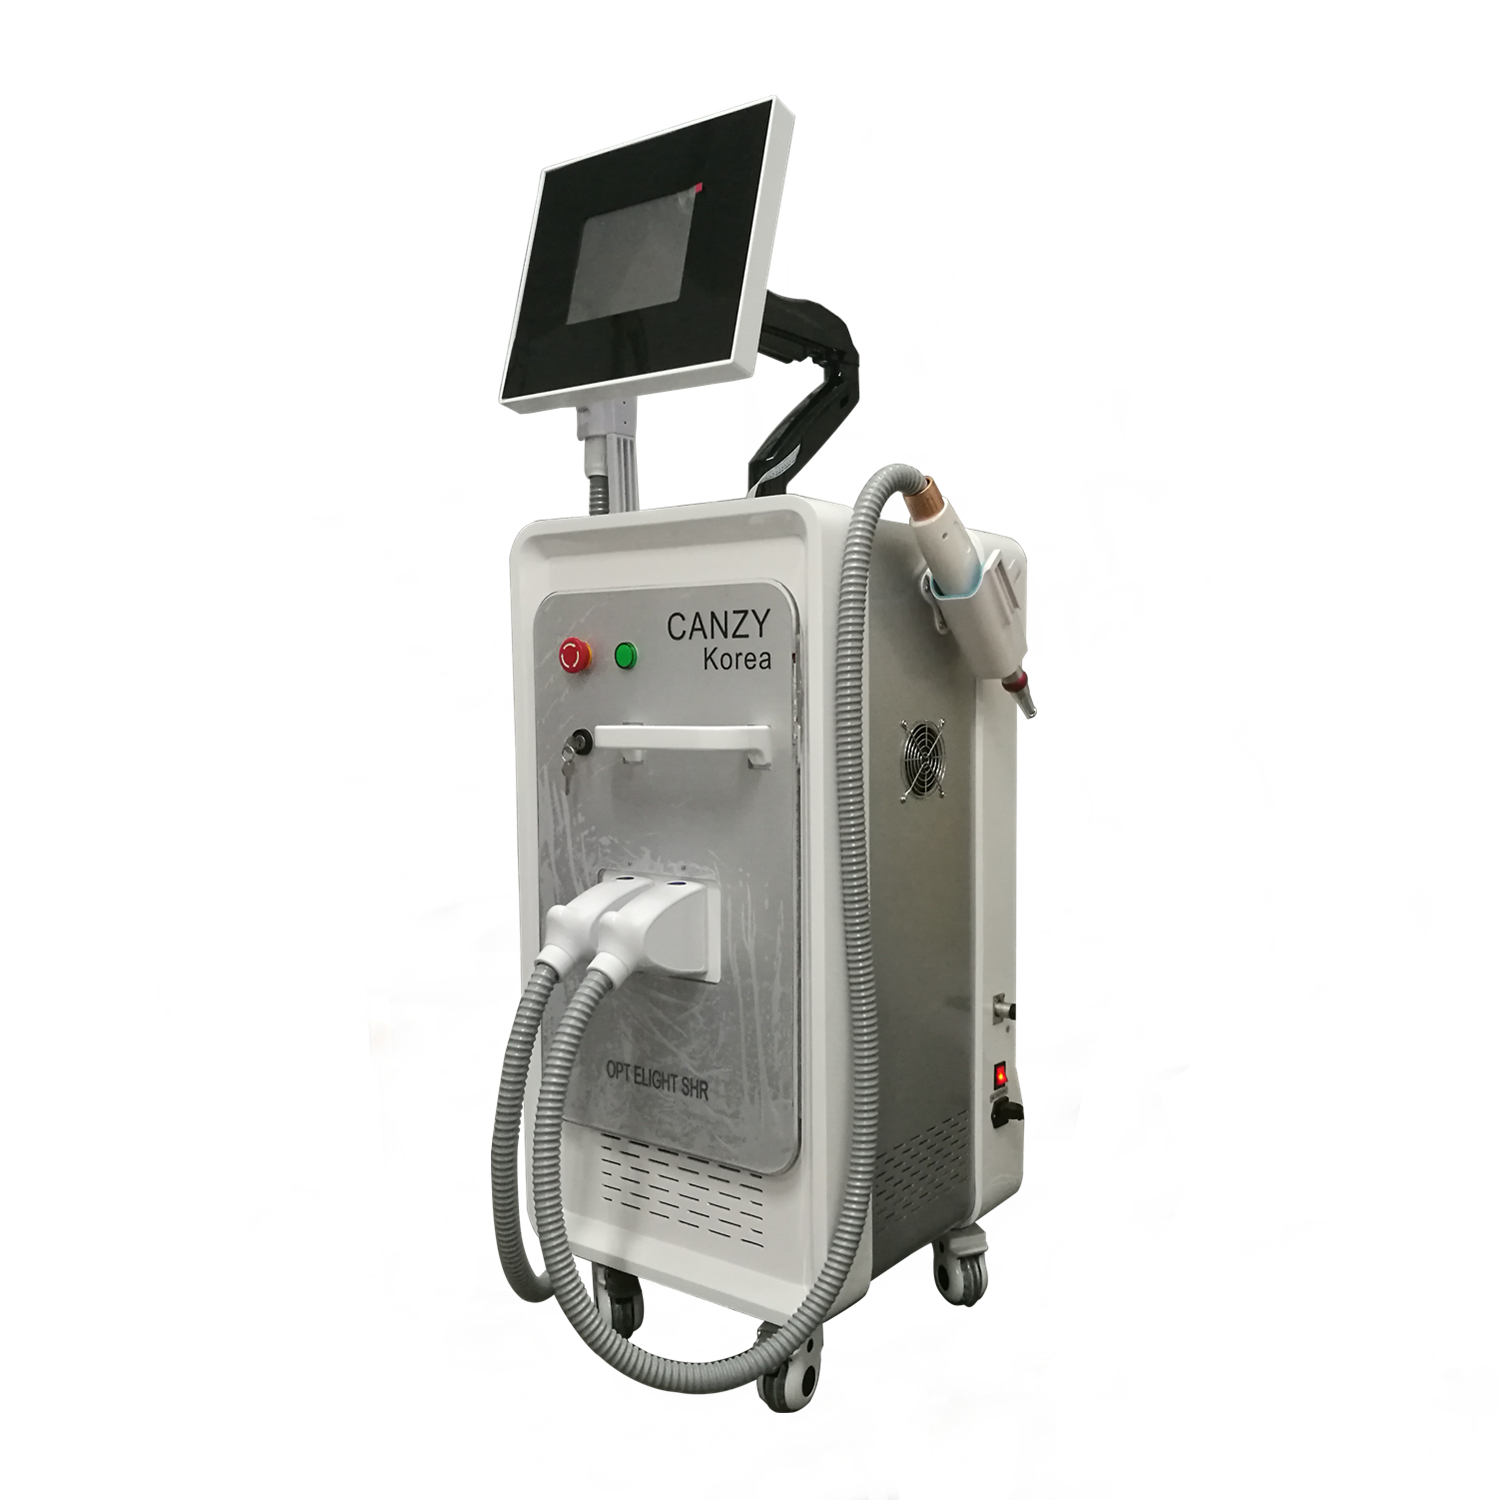 2,1 IPL - SHR Switch Nd YAG tatouage laser machine